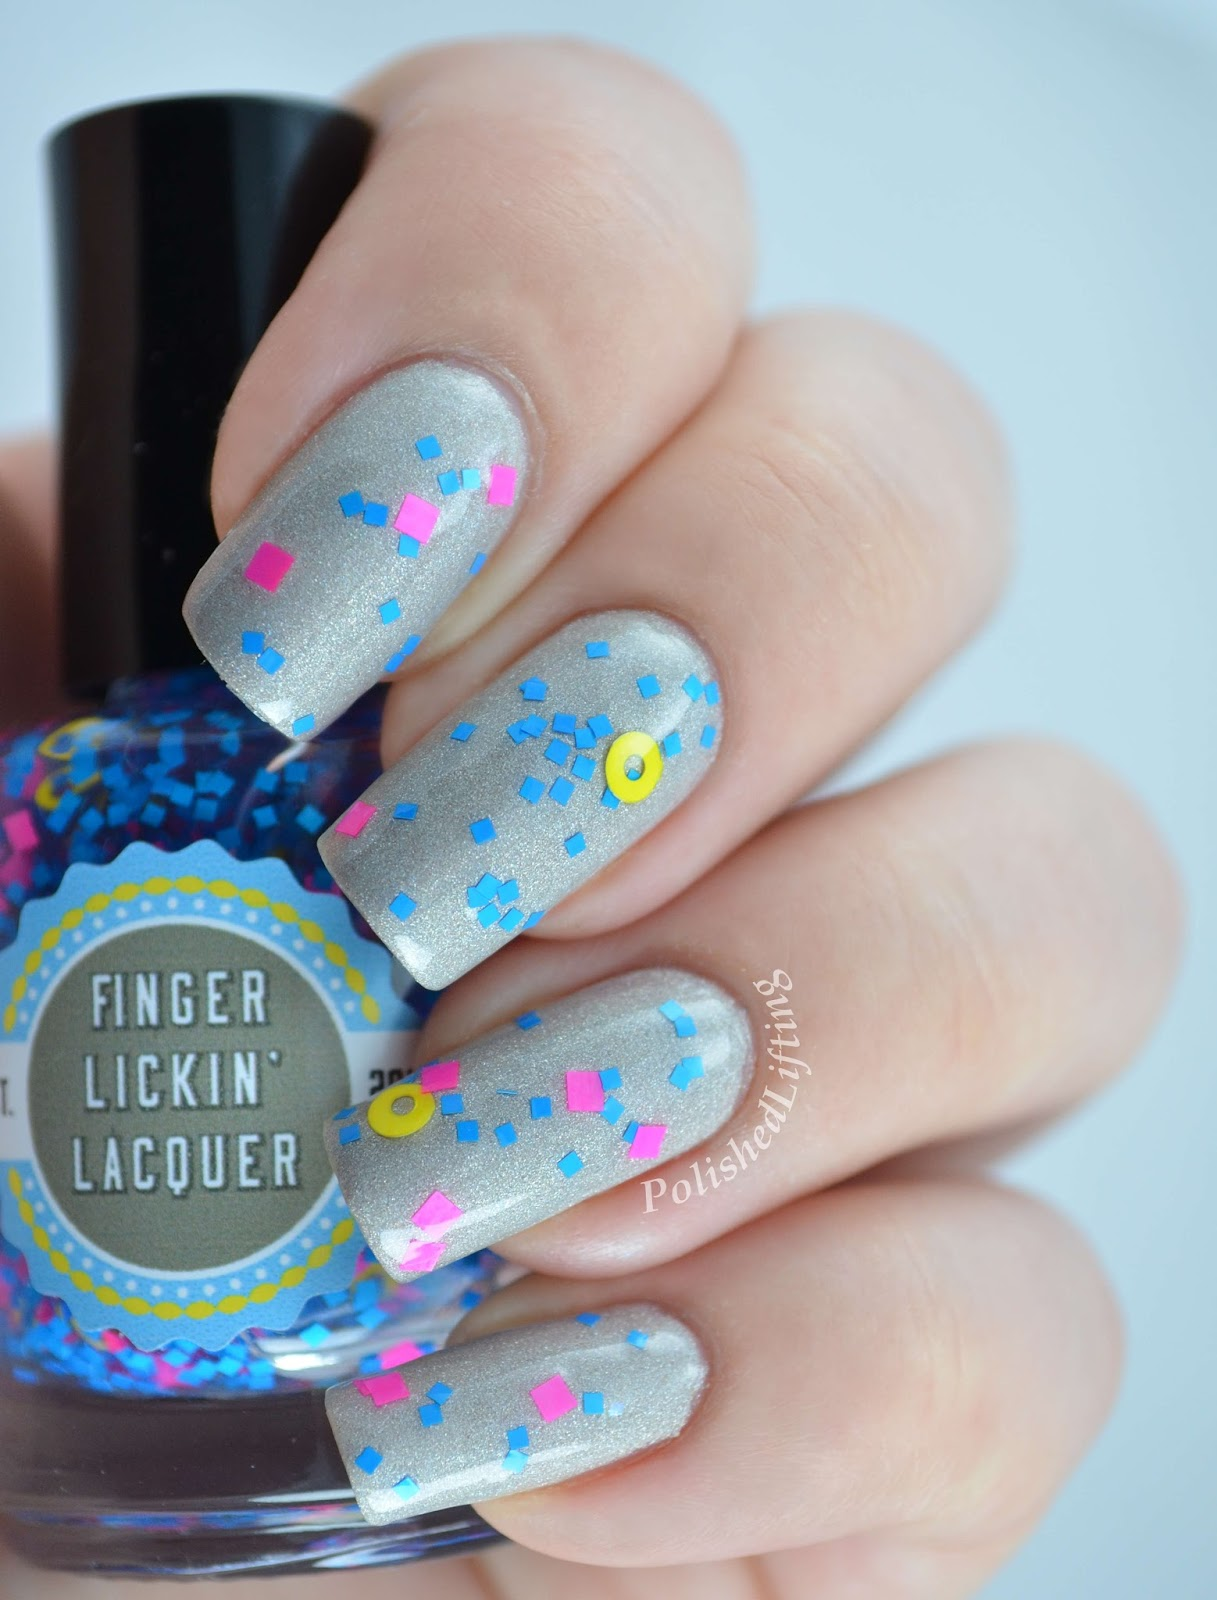 Finger Lickin' Lacquer Totally Rad Mix Tape